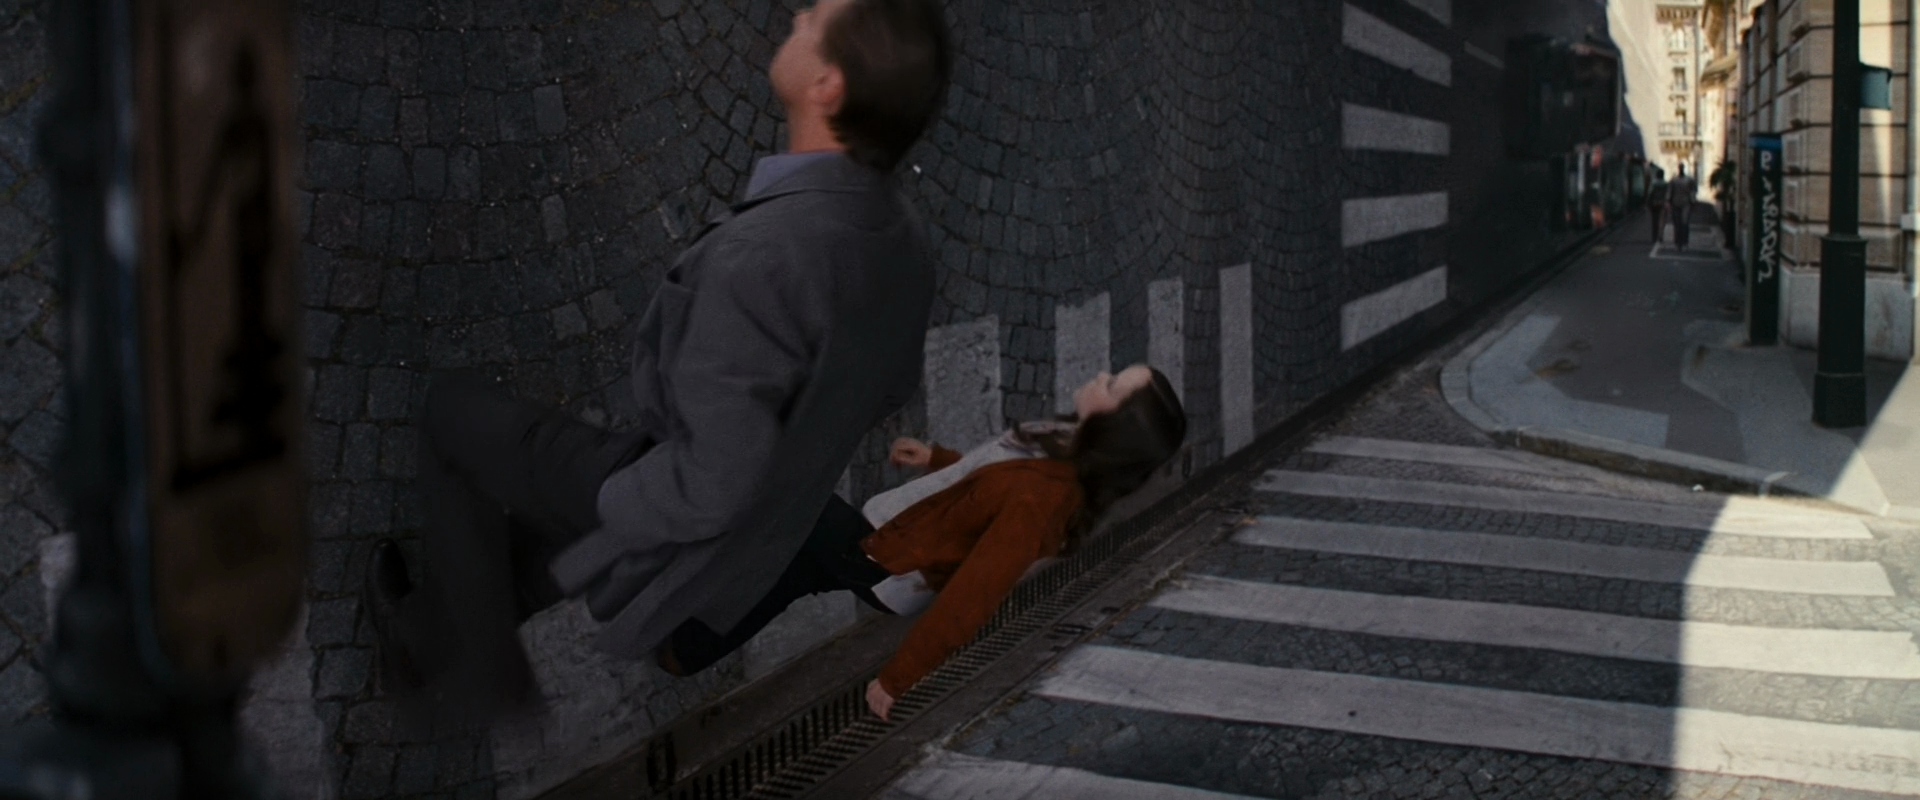 Inception.1080p.BluRay.x264-REFiNED.mkv_003047.219.png